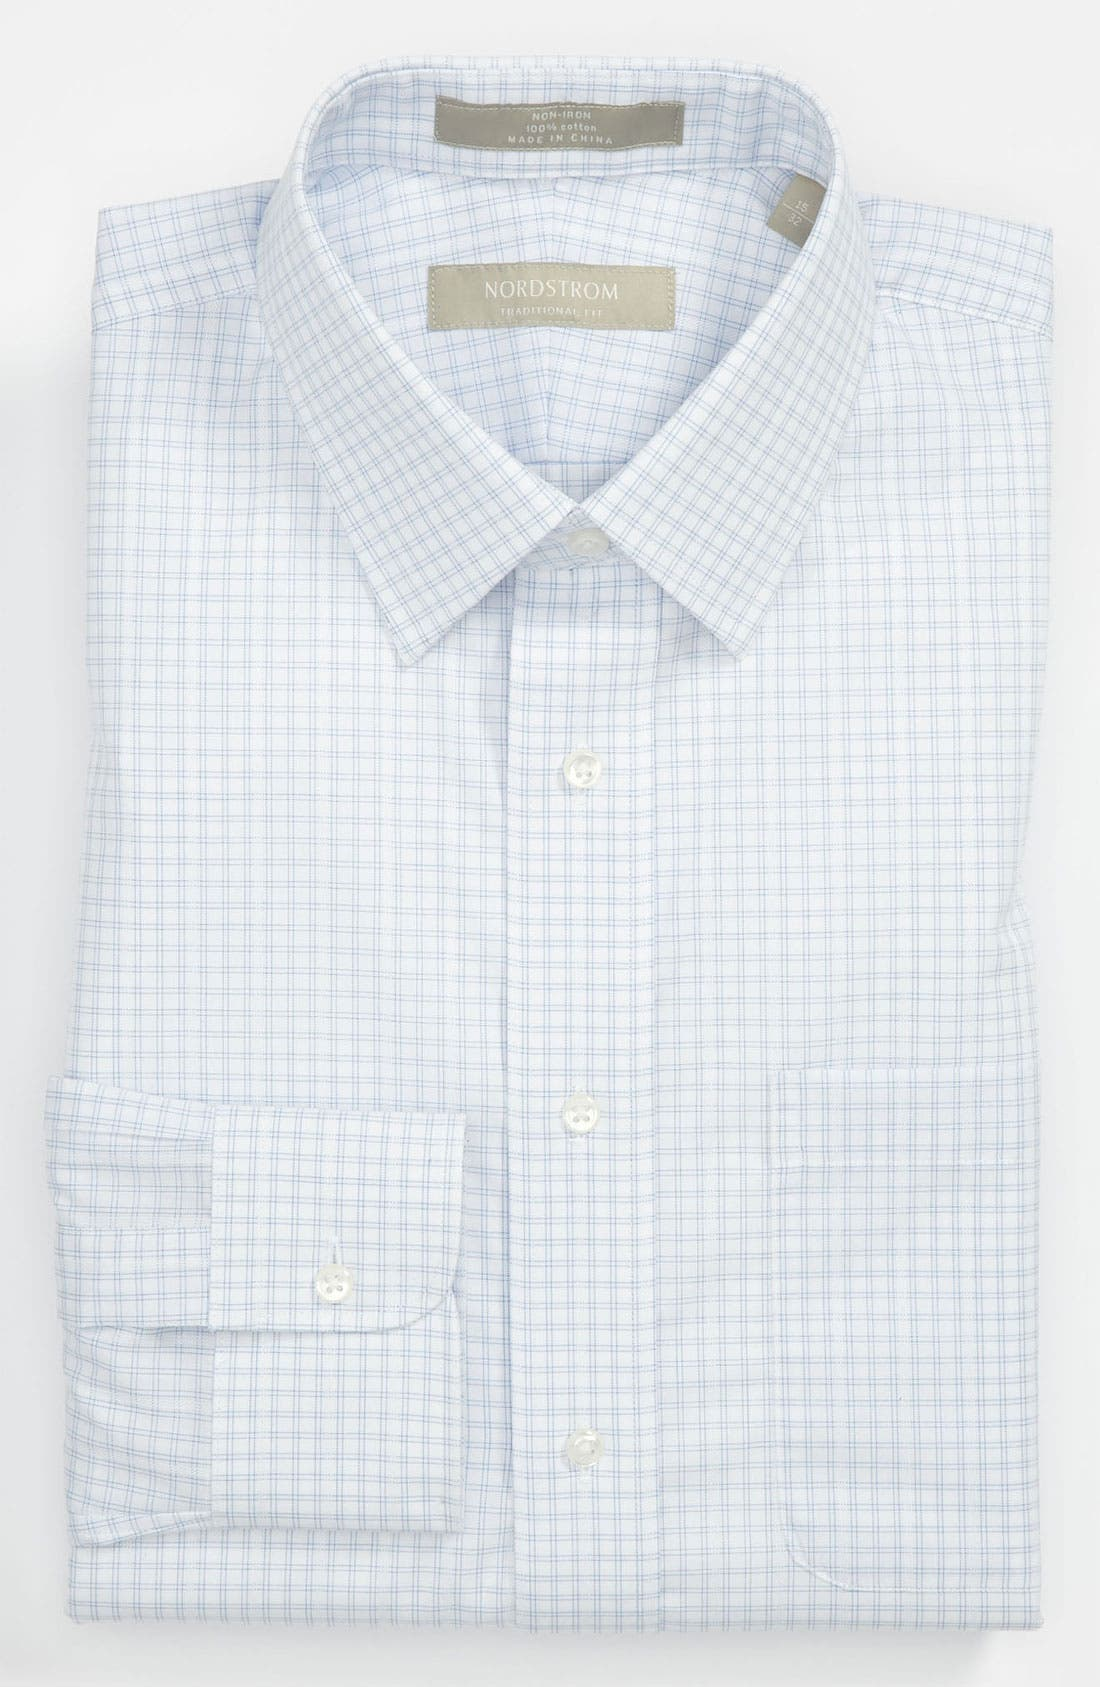 Alternate Image 1 Selected - Nordstrom Traditional Fit Non-Iron Dress Shirt (Online Only)